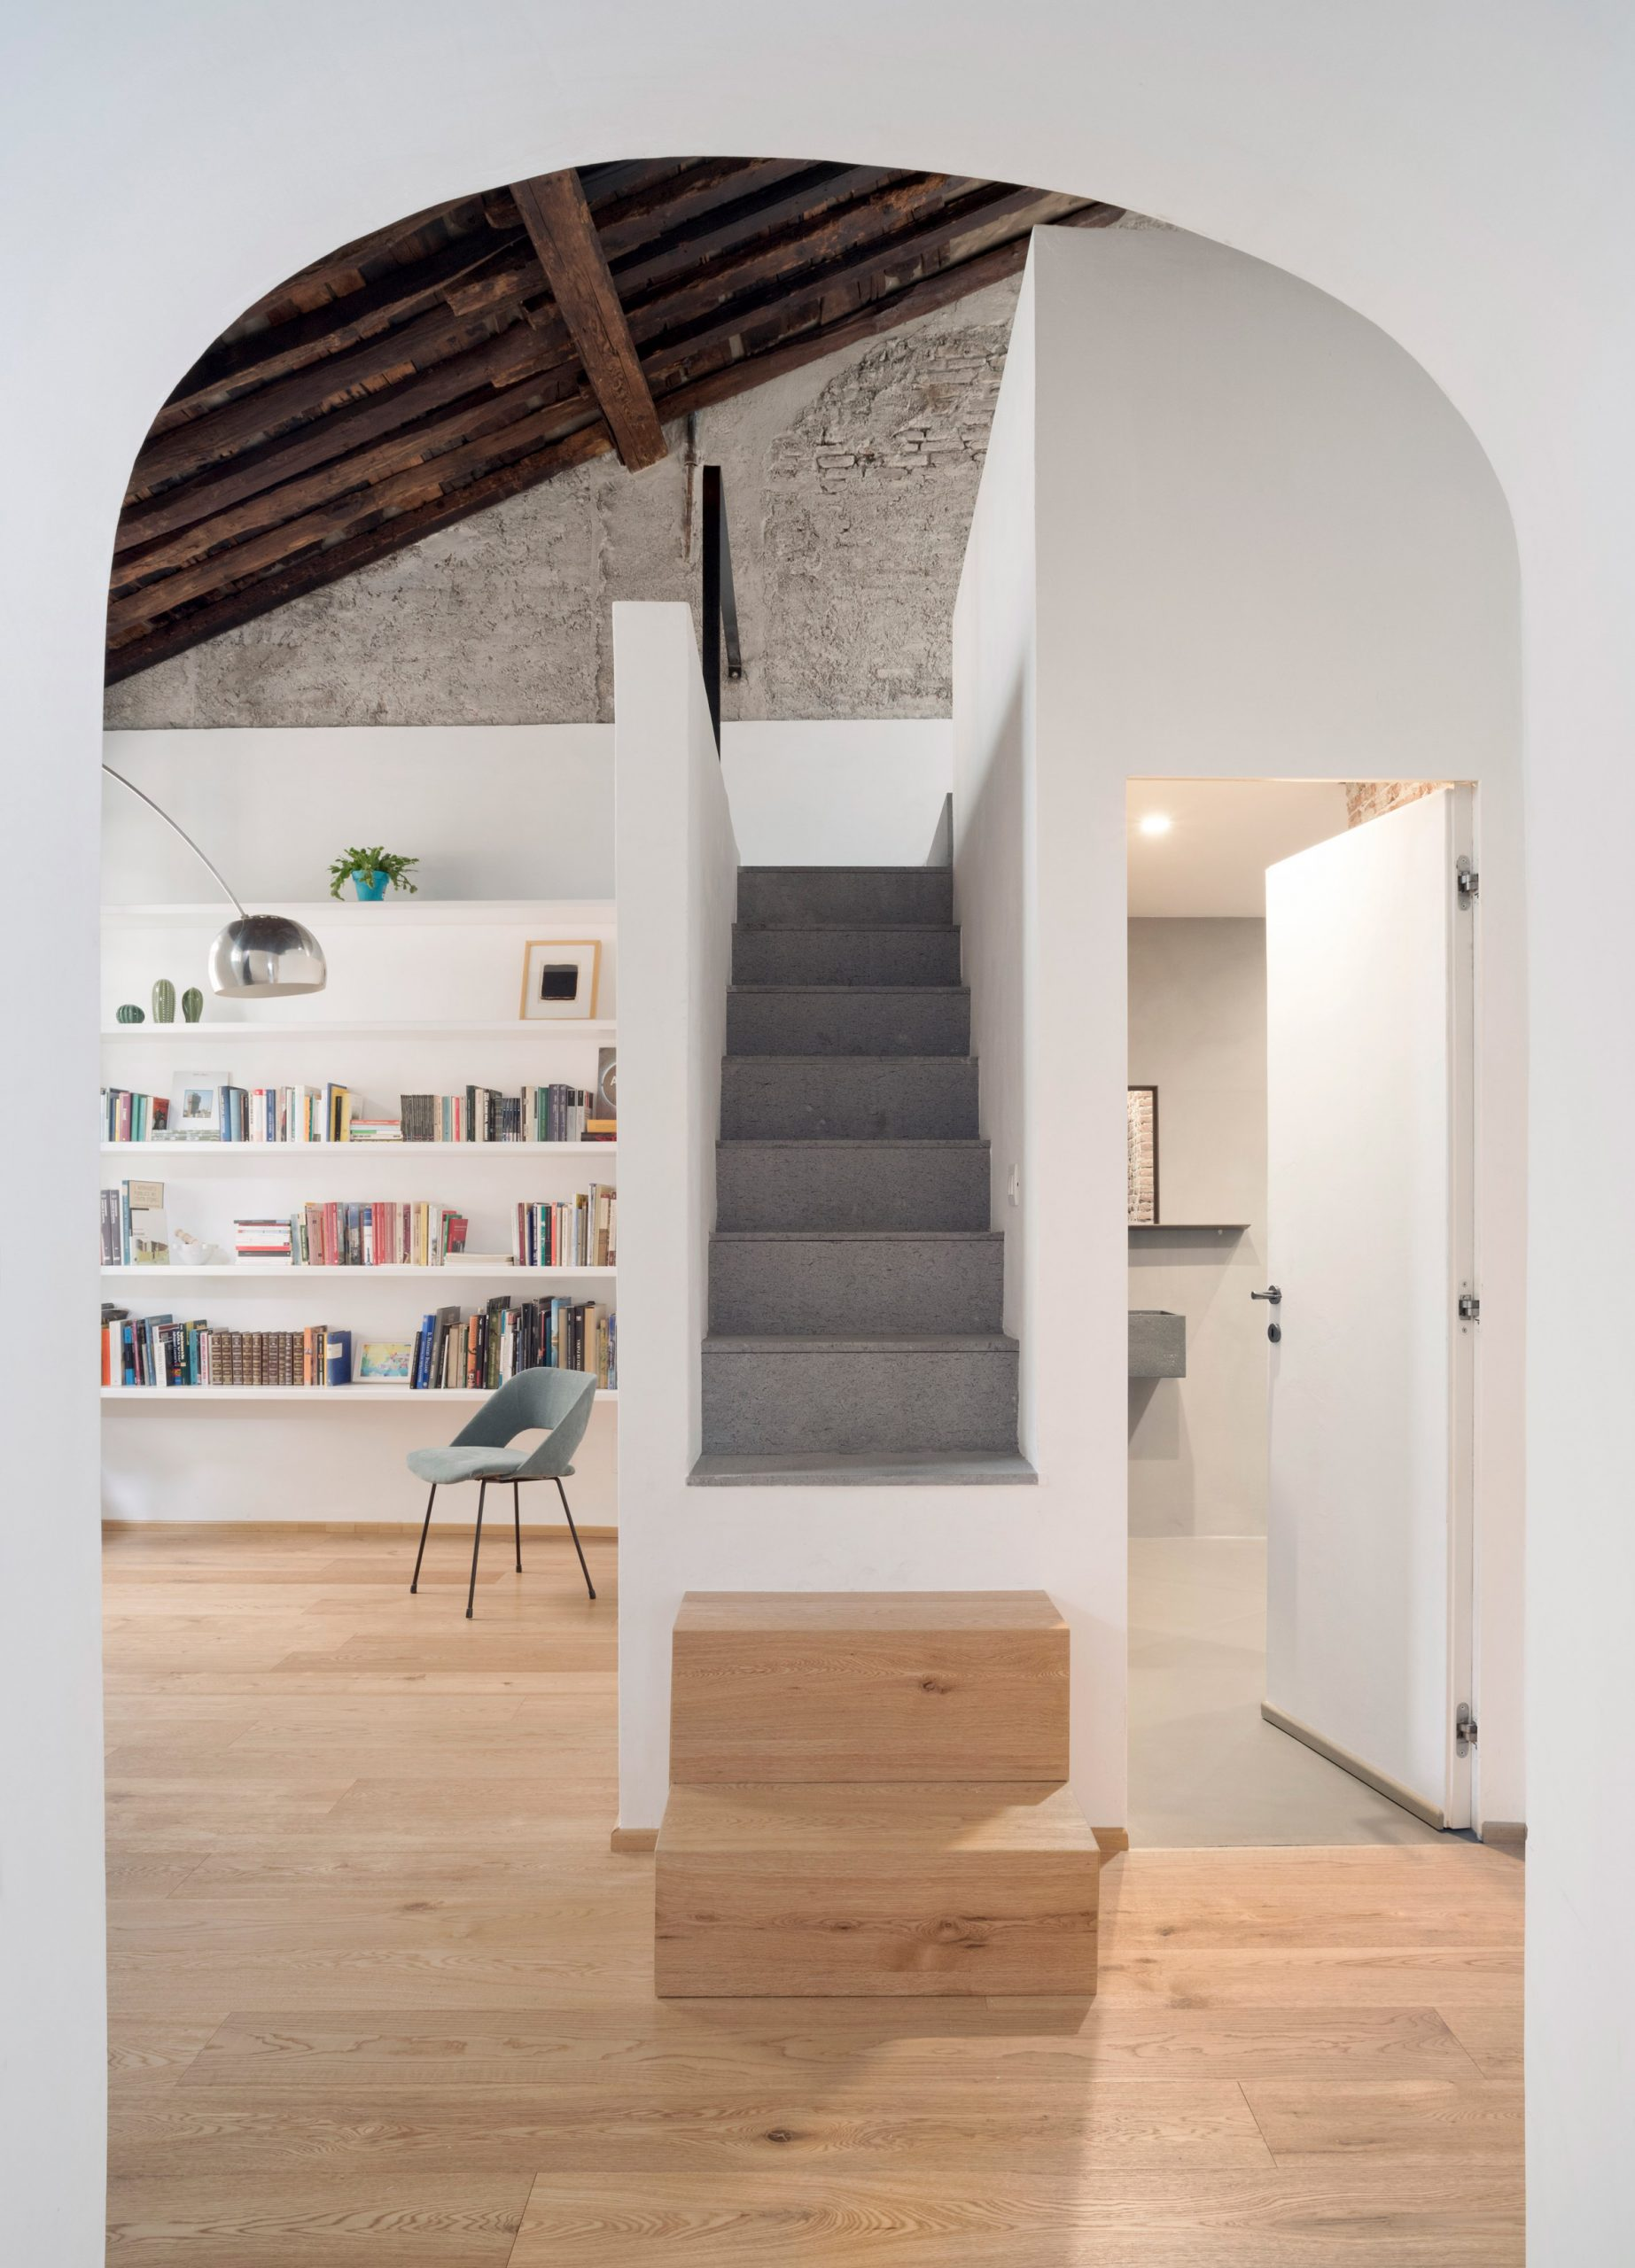 Entrance hallway of House for a Sea Dog in Genoa by Dodi Moss